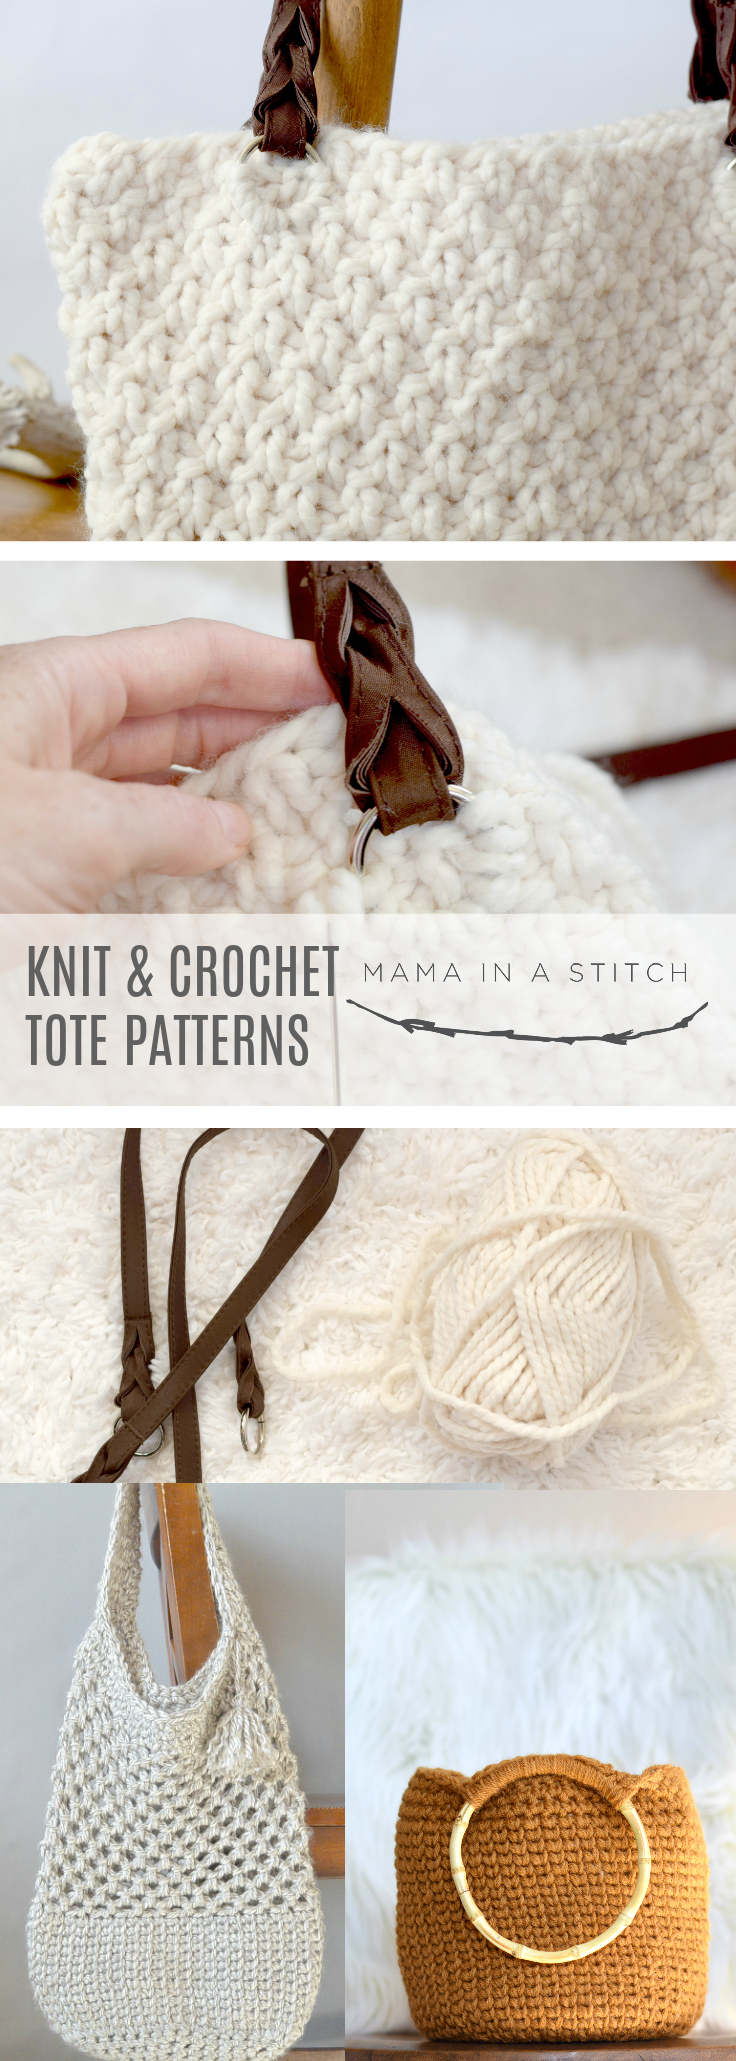 Easy Crochet & Knit Bag Patterns – Mama In A Stitch